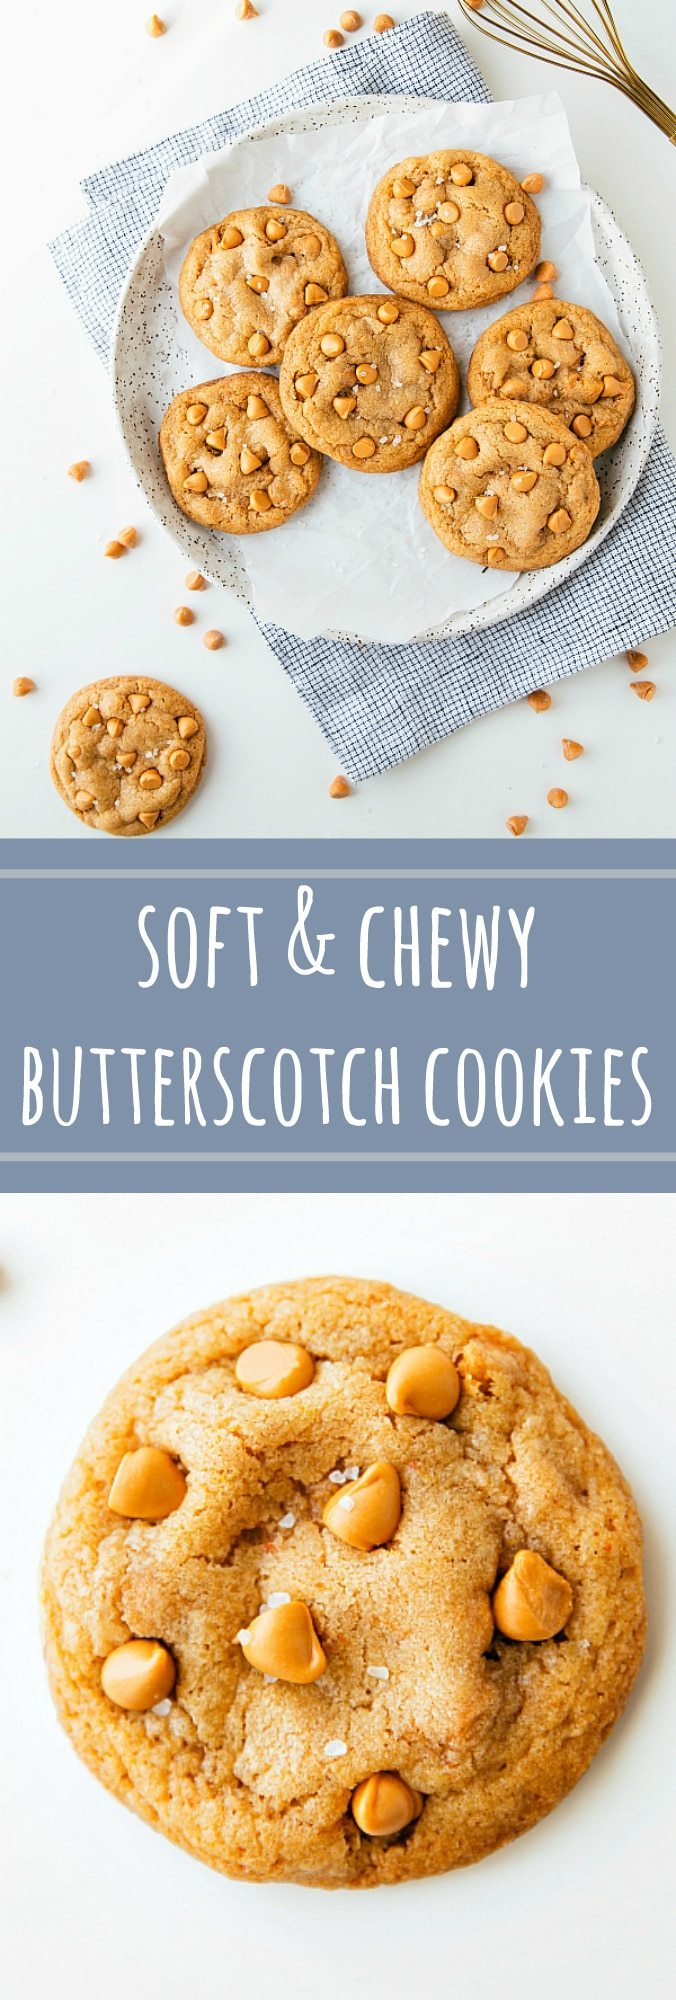 The BEST, softest, and chewiest butterscotch cookies